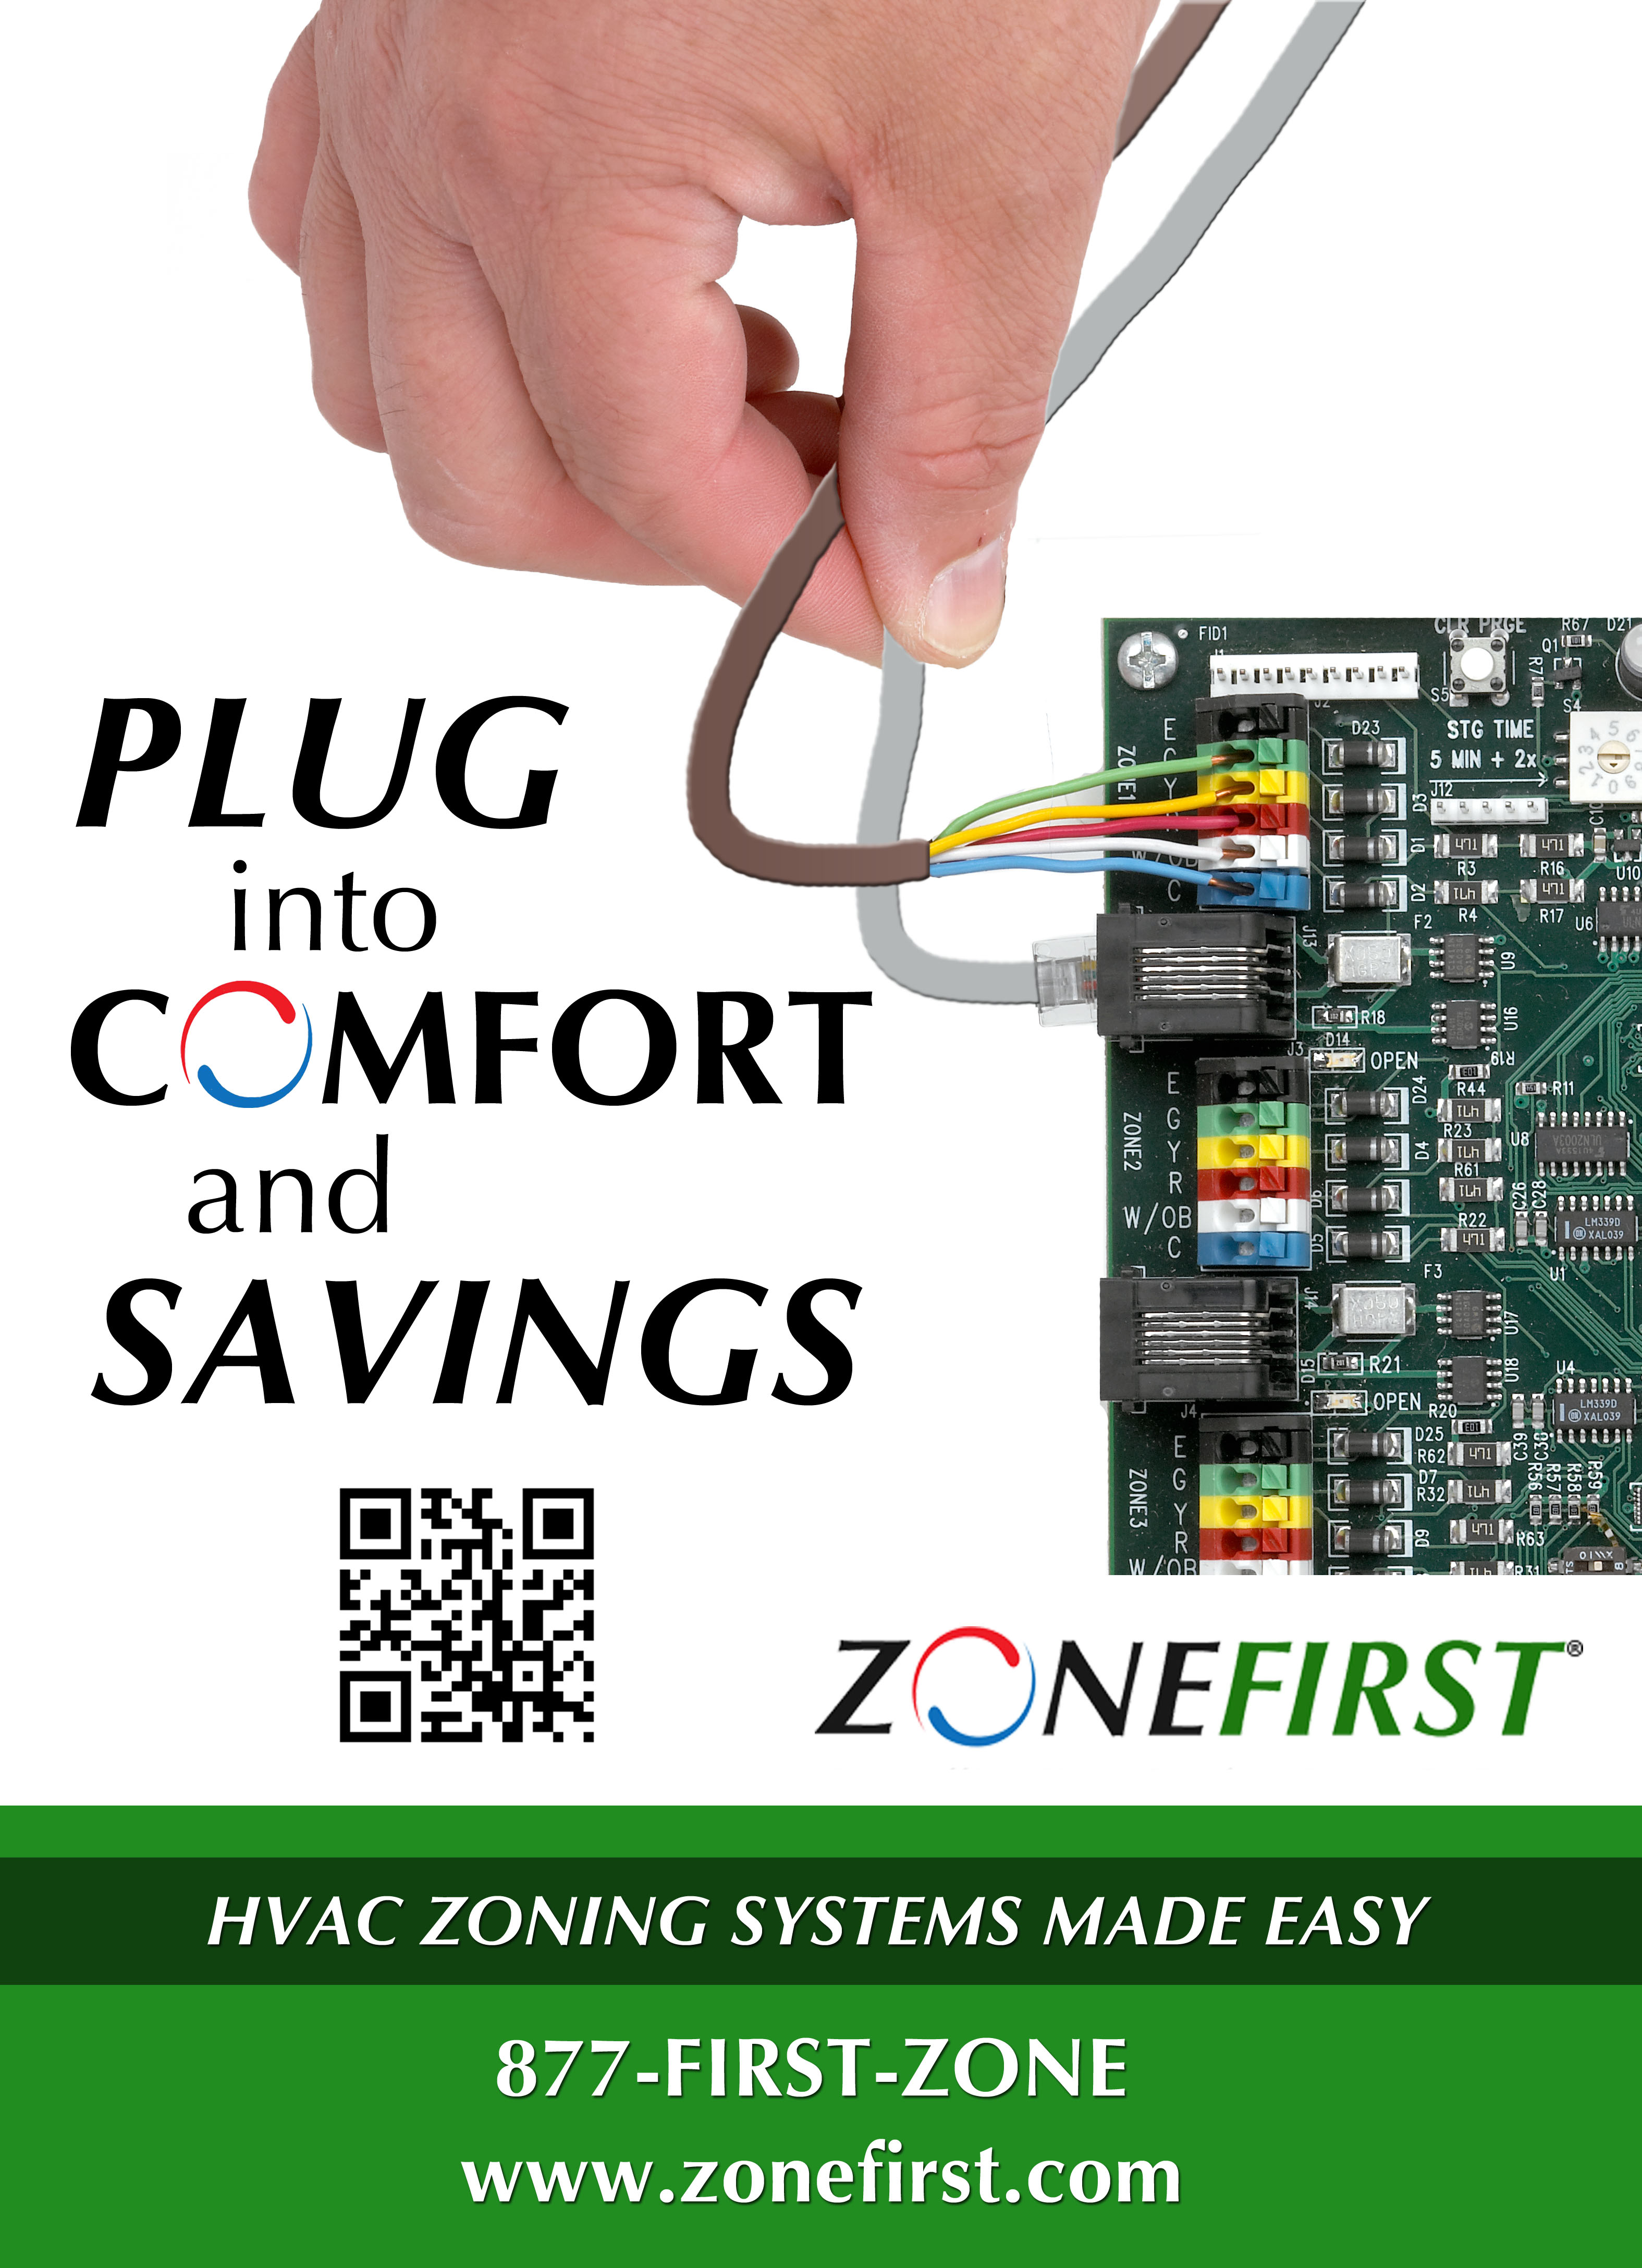 hvac-zoning-zone-damper-easy-zone-control-home-